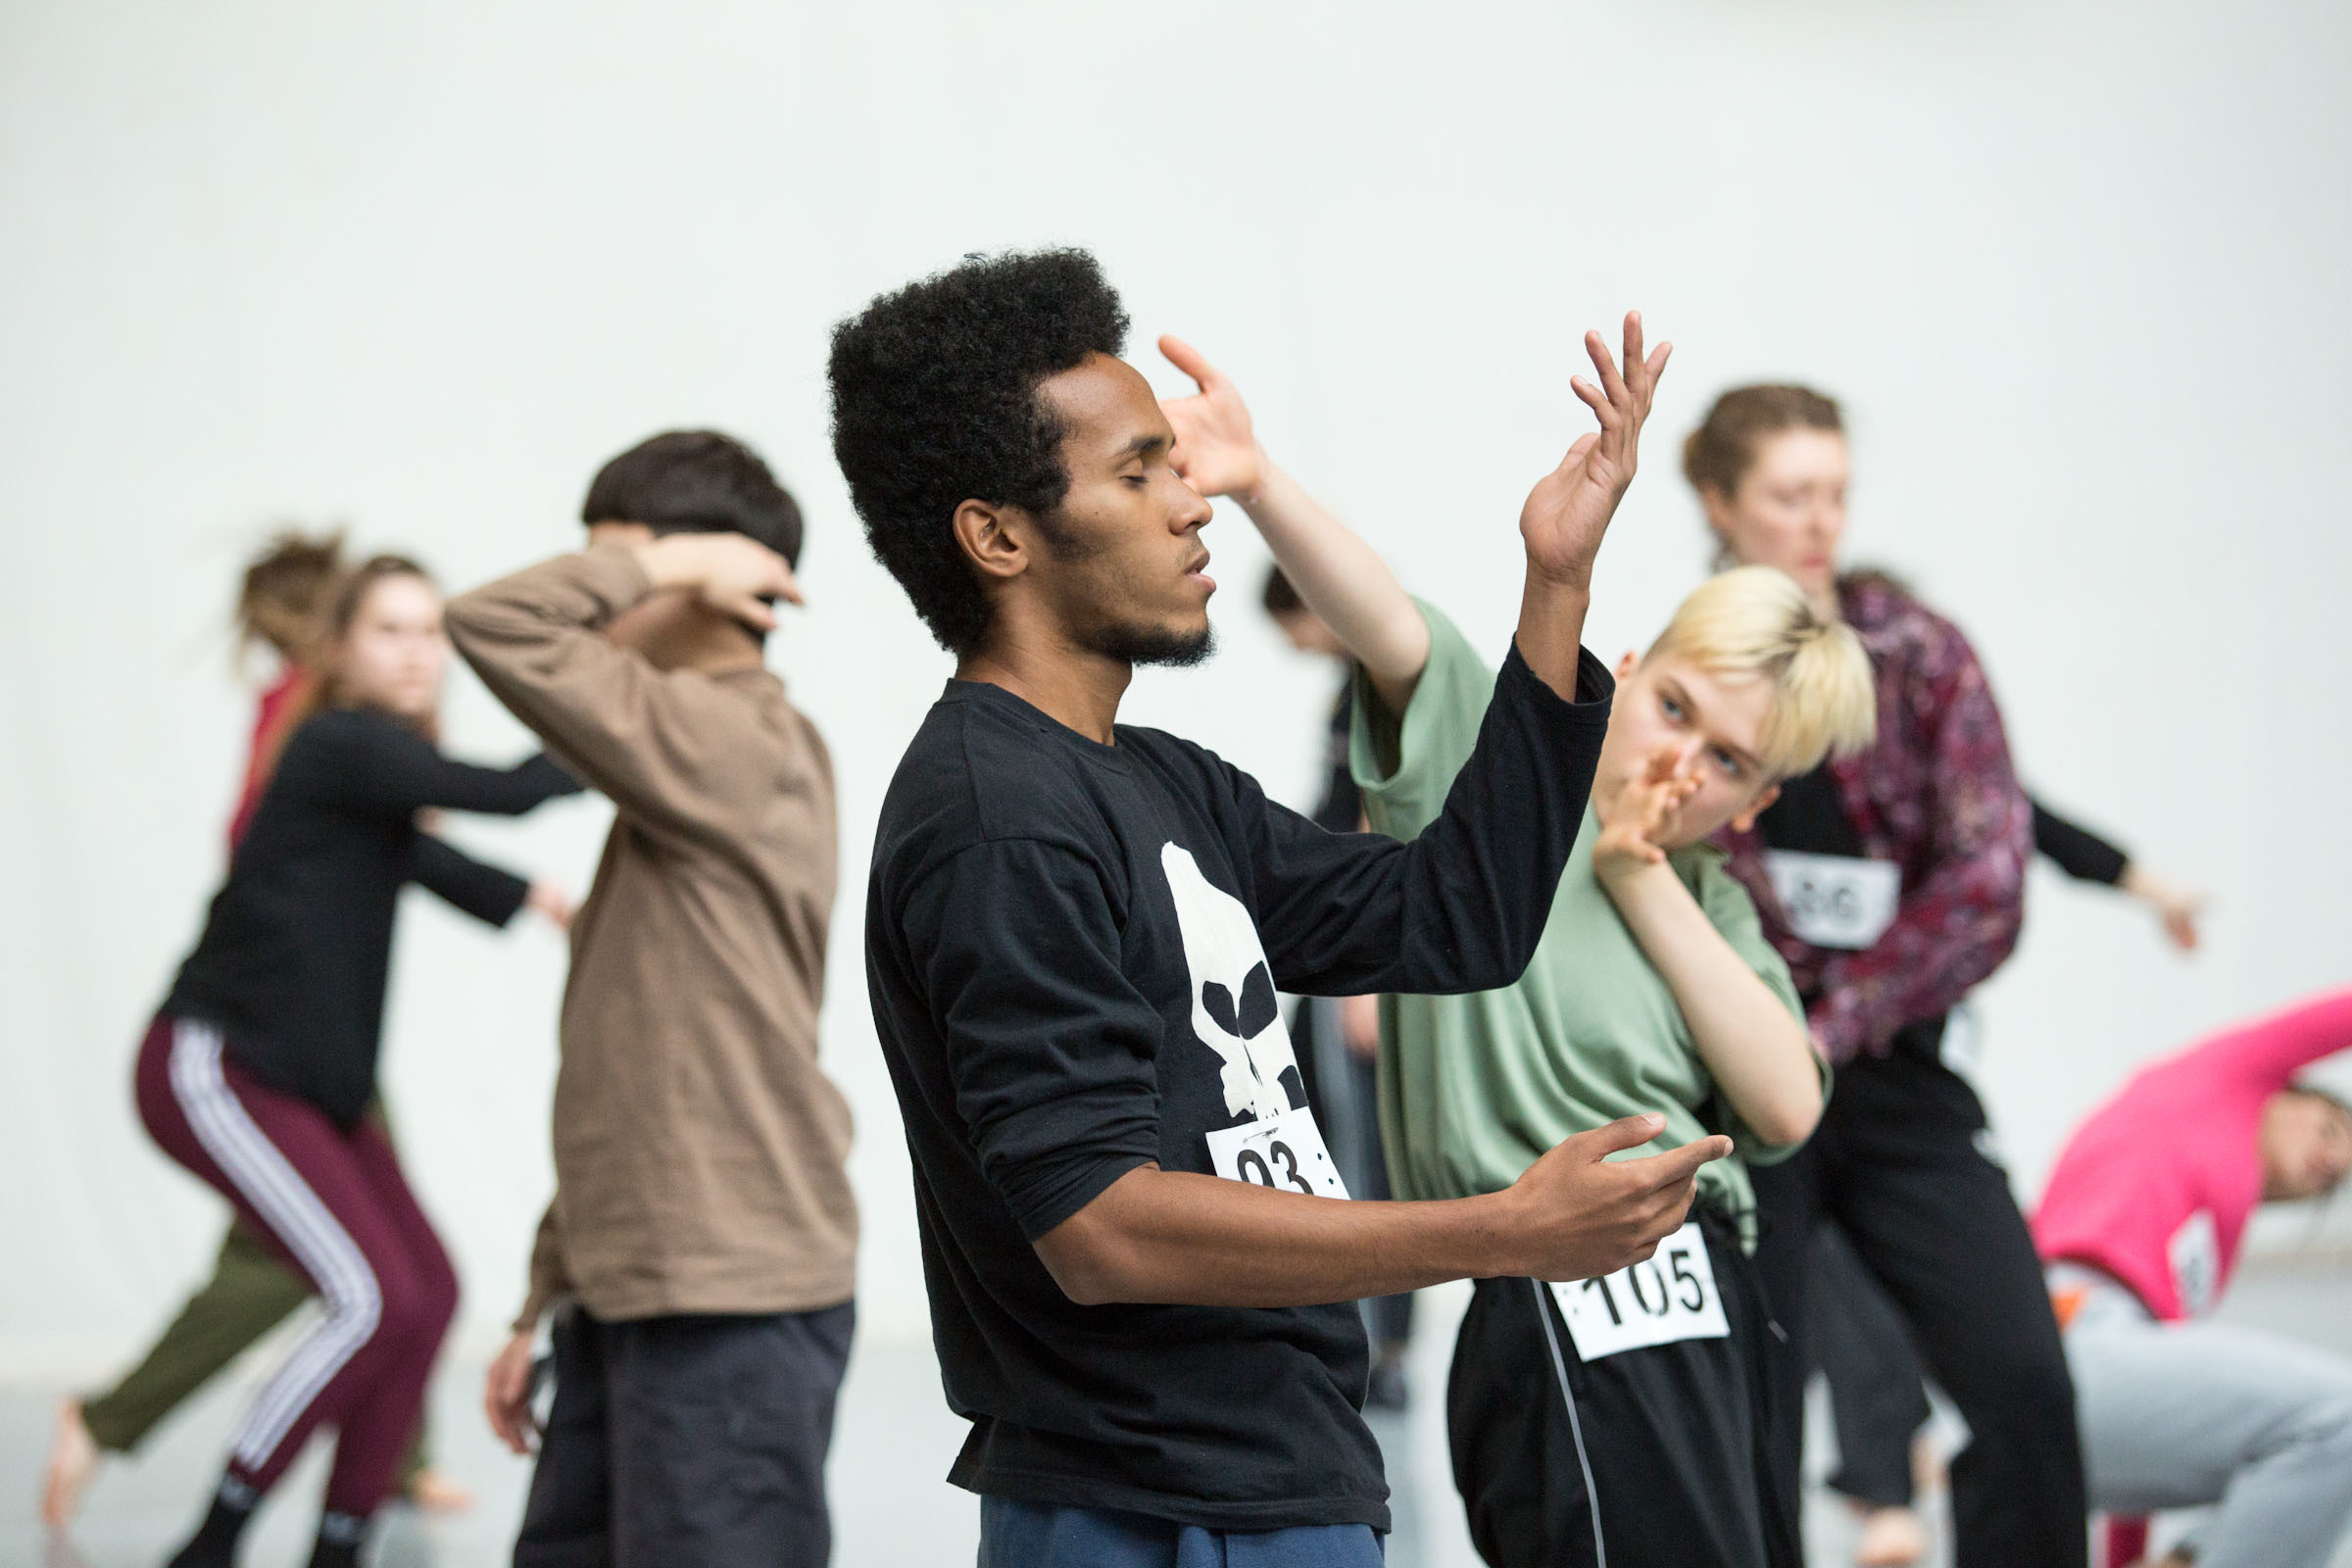 Finale audition class David-Hernandez - picture by Tine Declerck